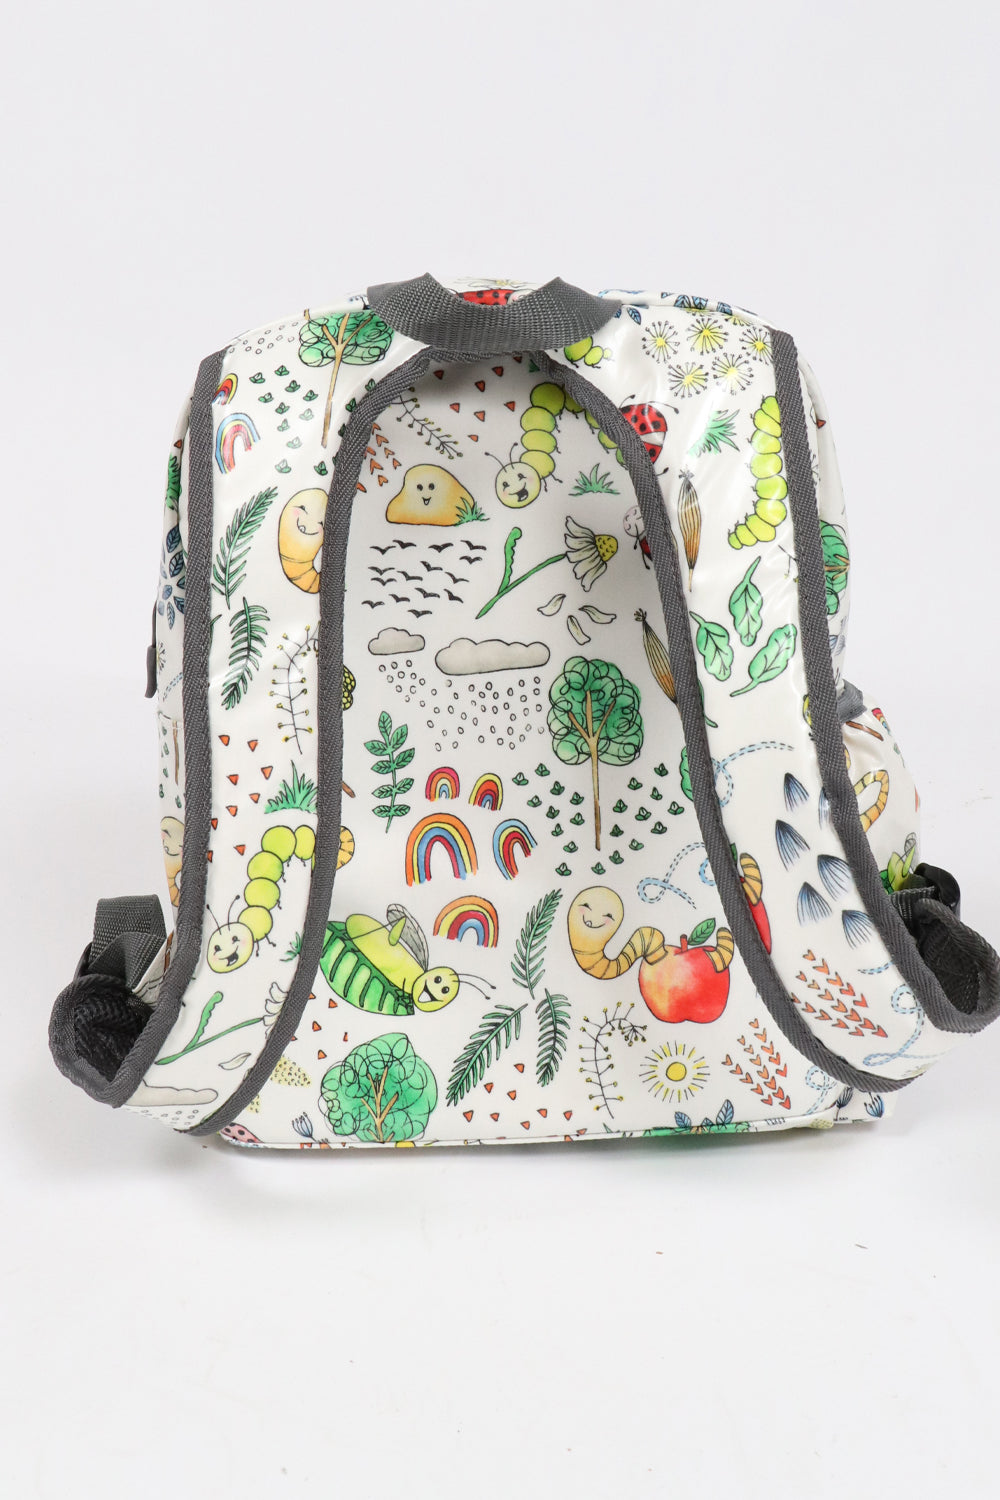 BACKPACK, EXPECT-A-SPILL, KIDS, LITTLE CREATURES